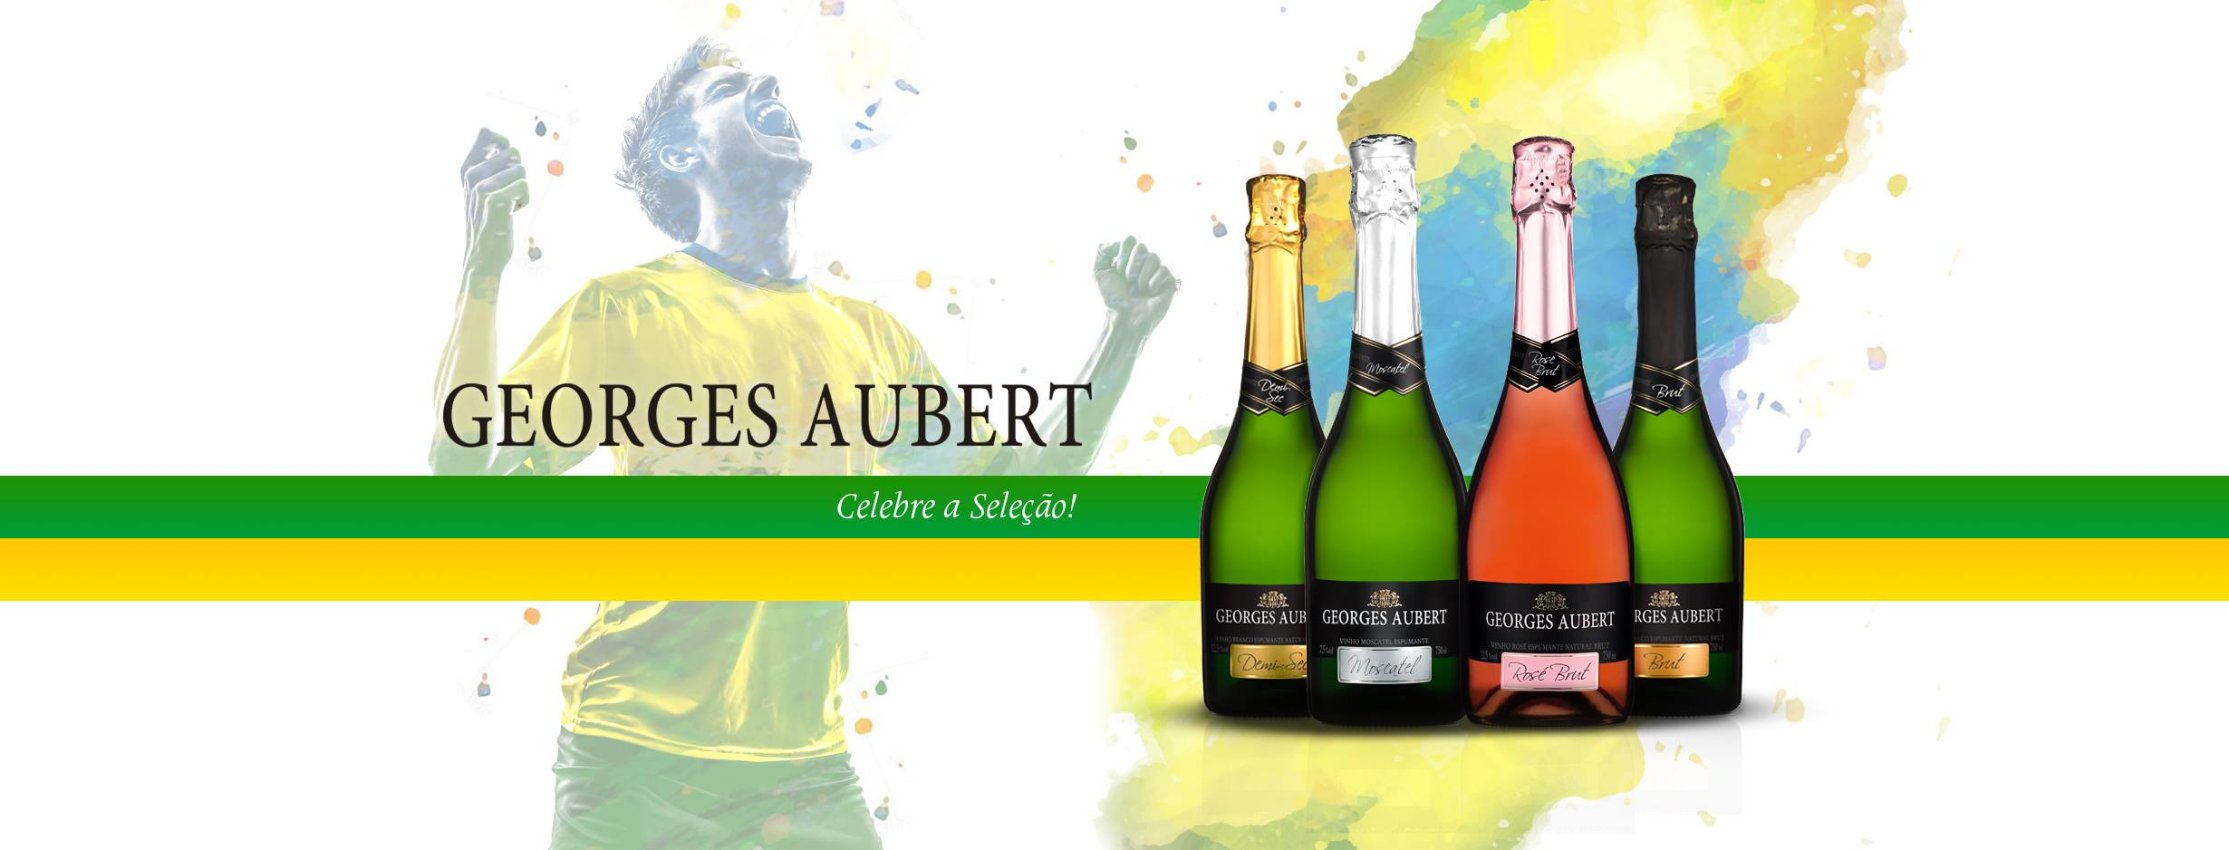 Georges Aubert copa 2018